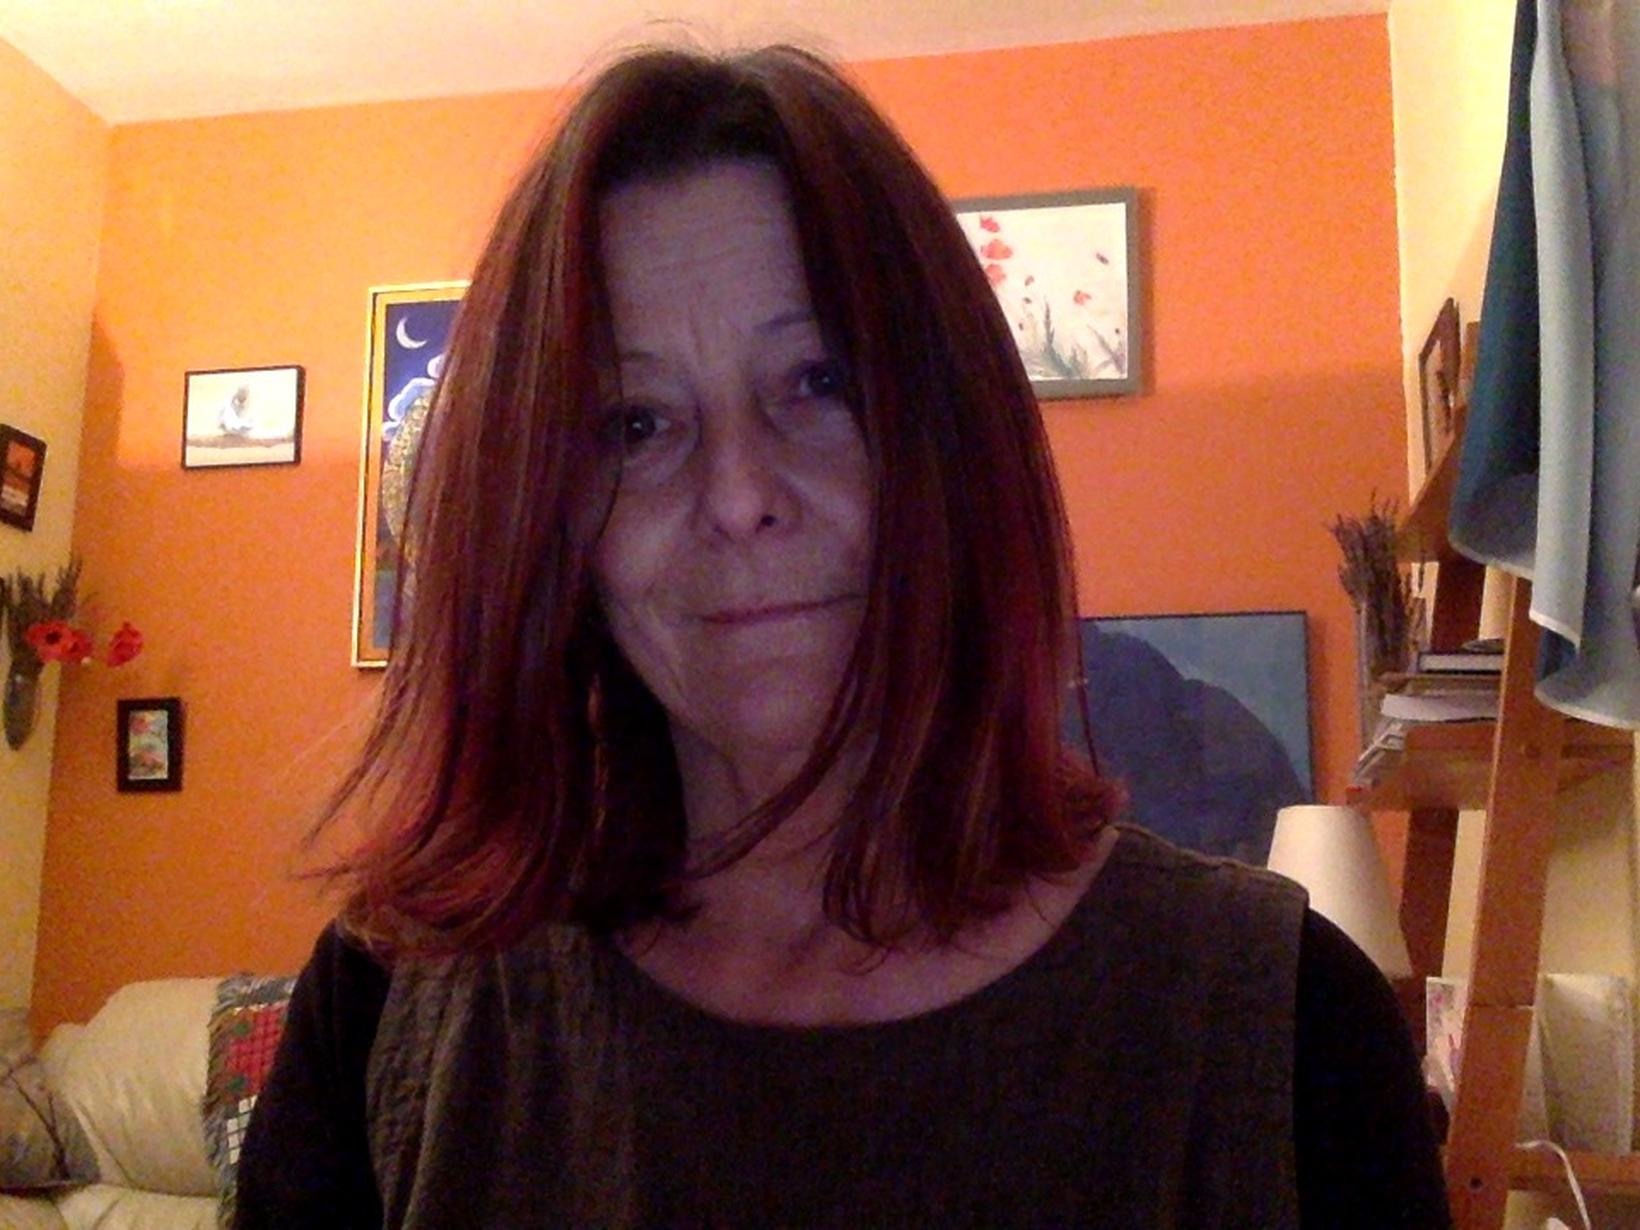 Sheila from San Francisco, California, United States